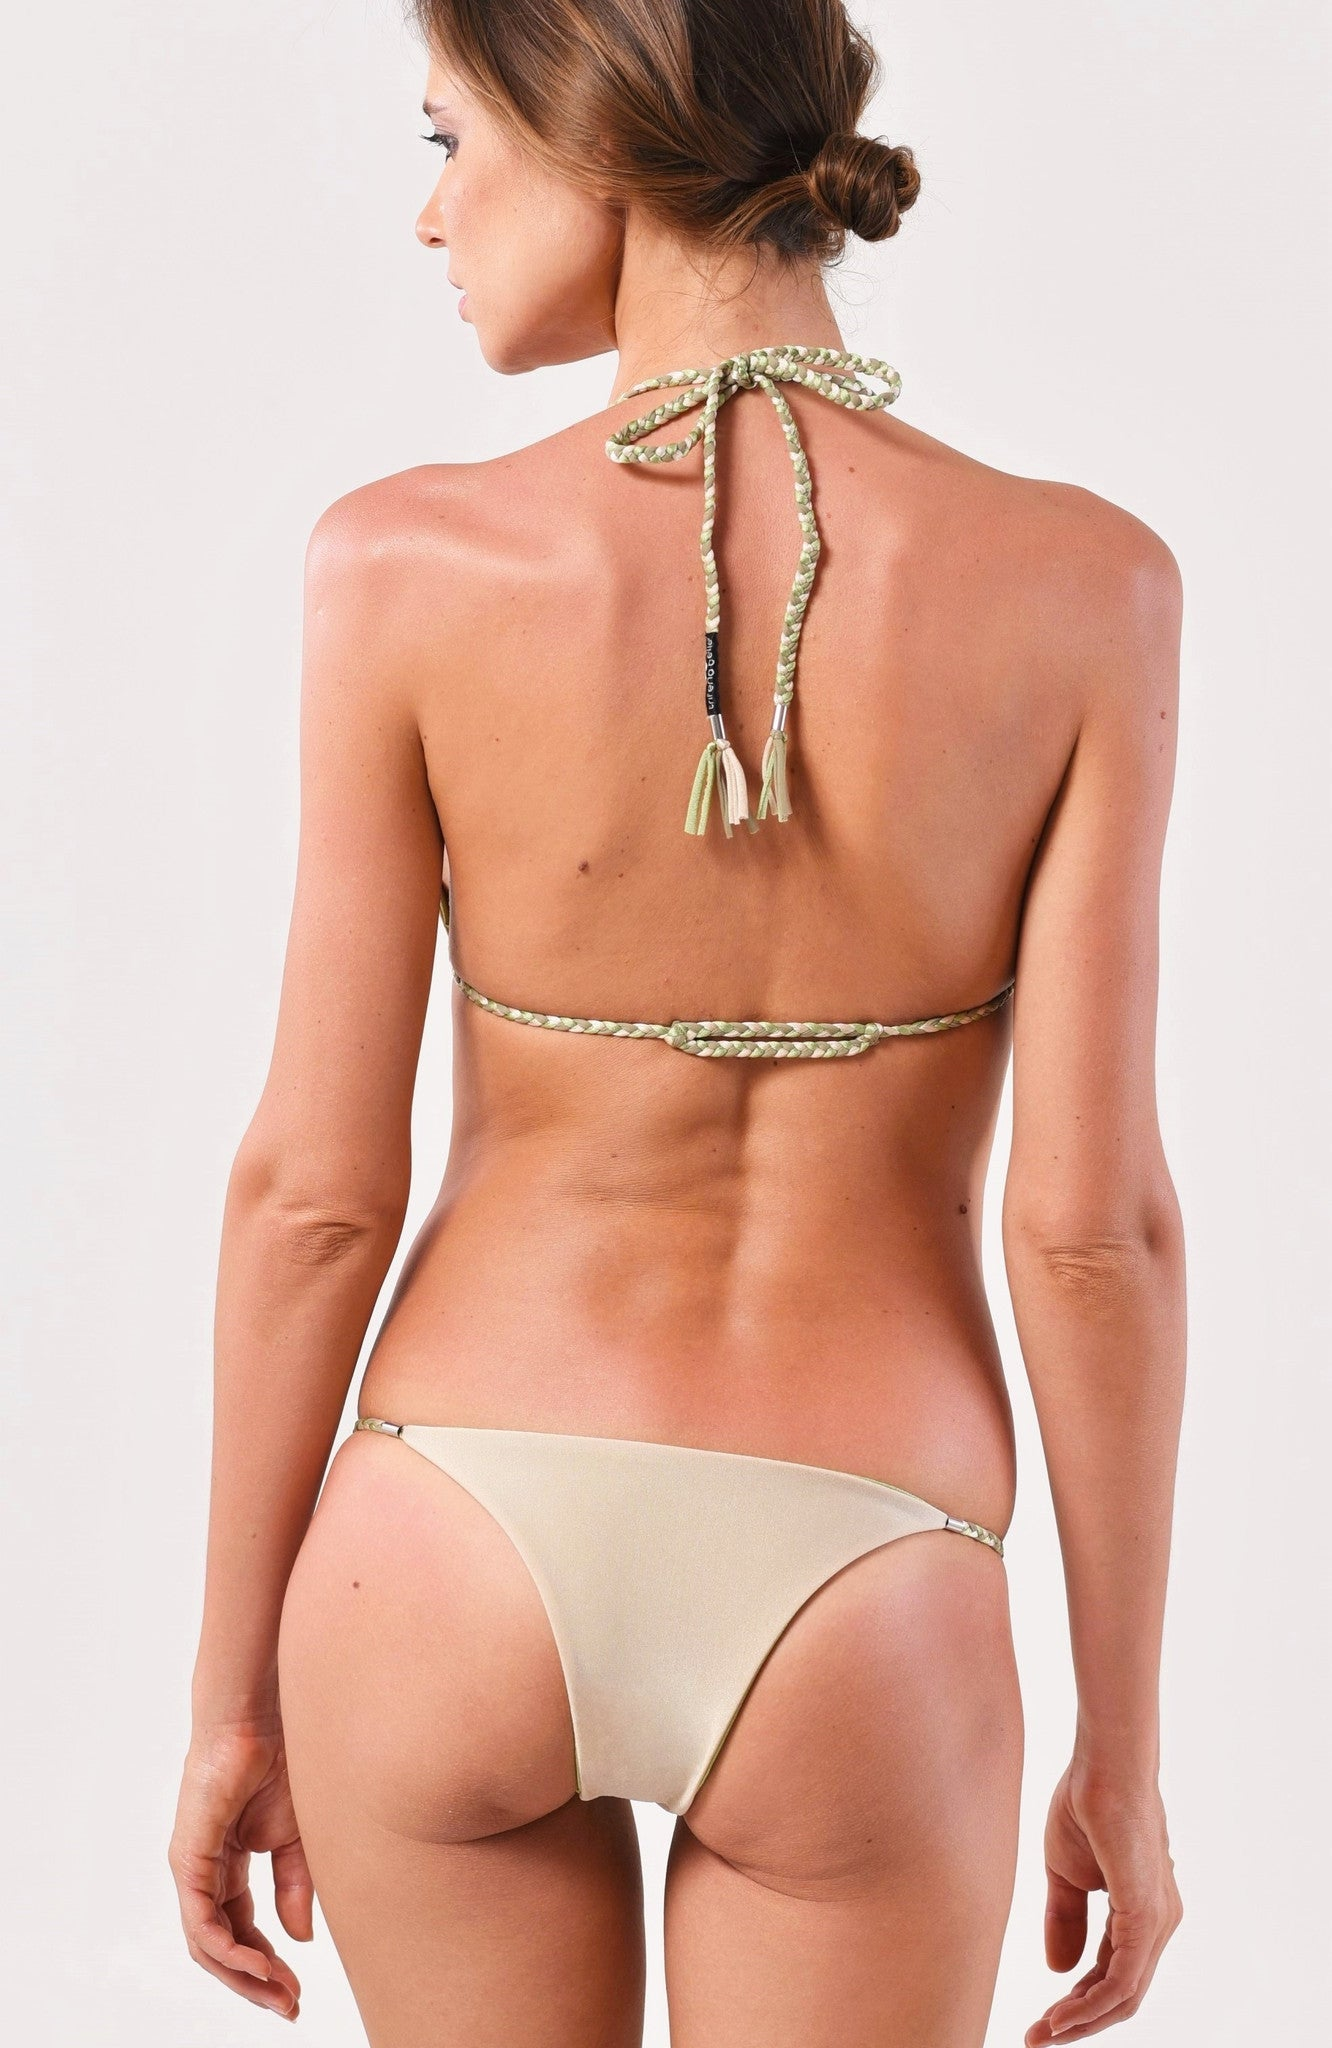 Nude/Pistachio Sliding Triangle Top x String Bottom